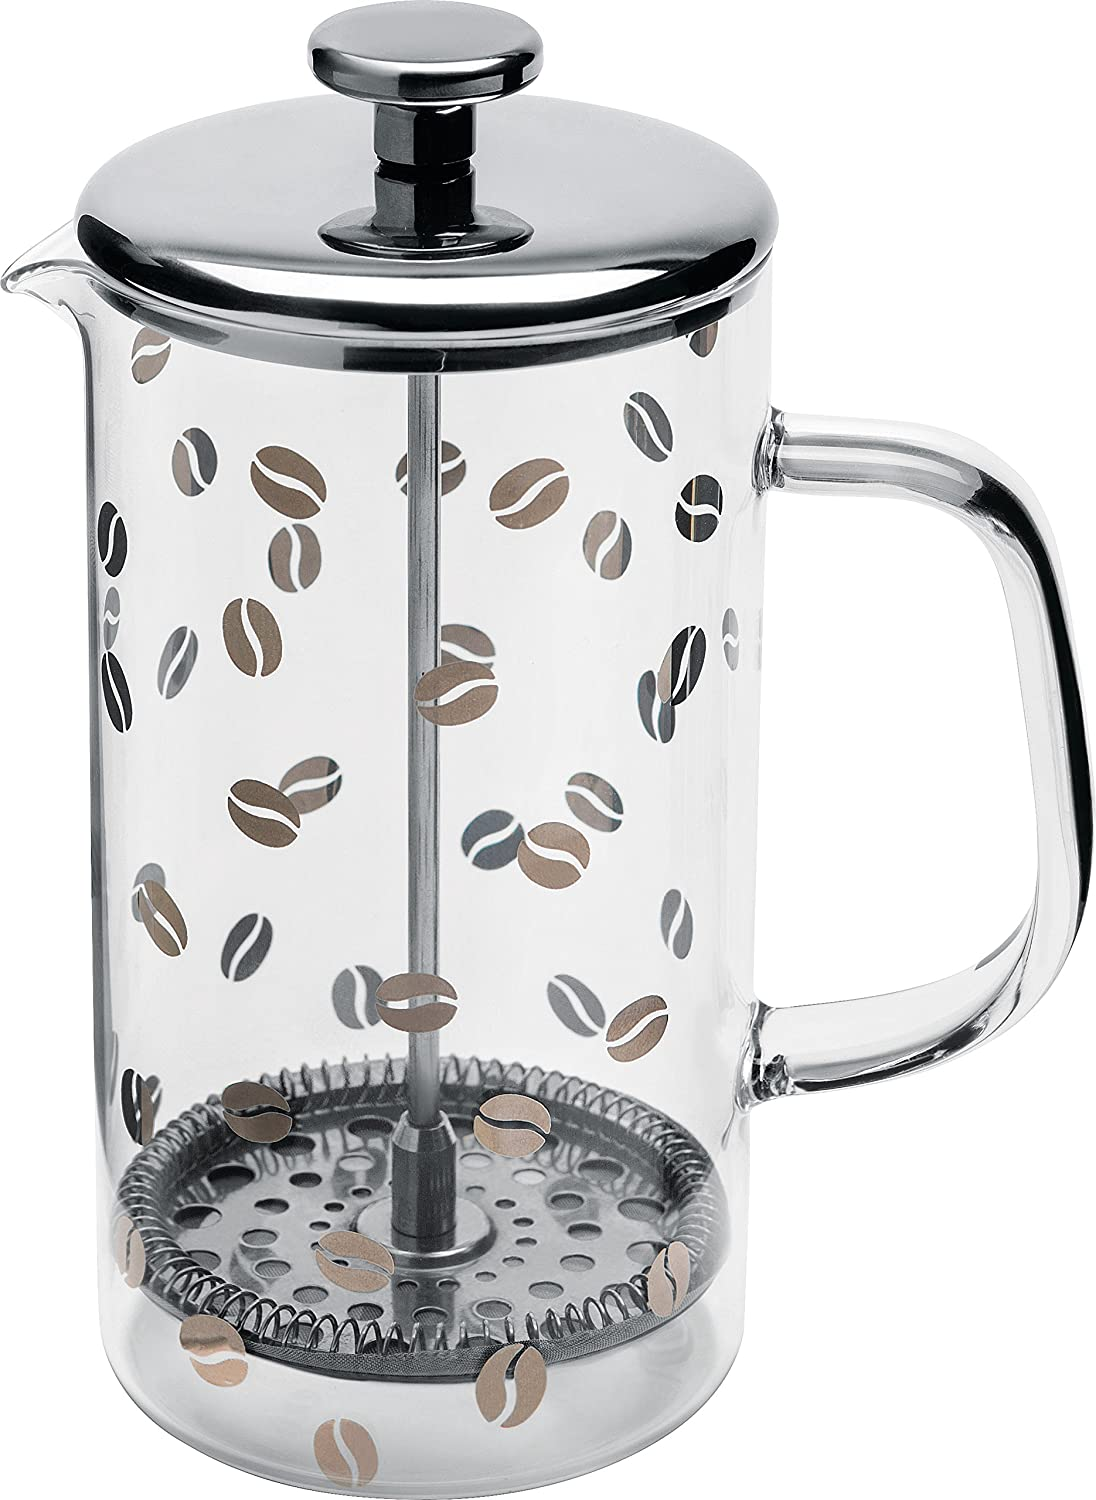 Alessi Mame Press Filter Coffee Maker Or infuser in 18 10 Stainless Steel Silk-Screened Mirror Polished And Heat Resistant Glass, Silver